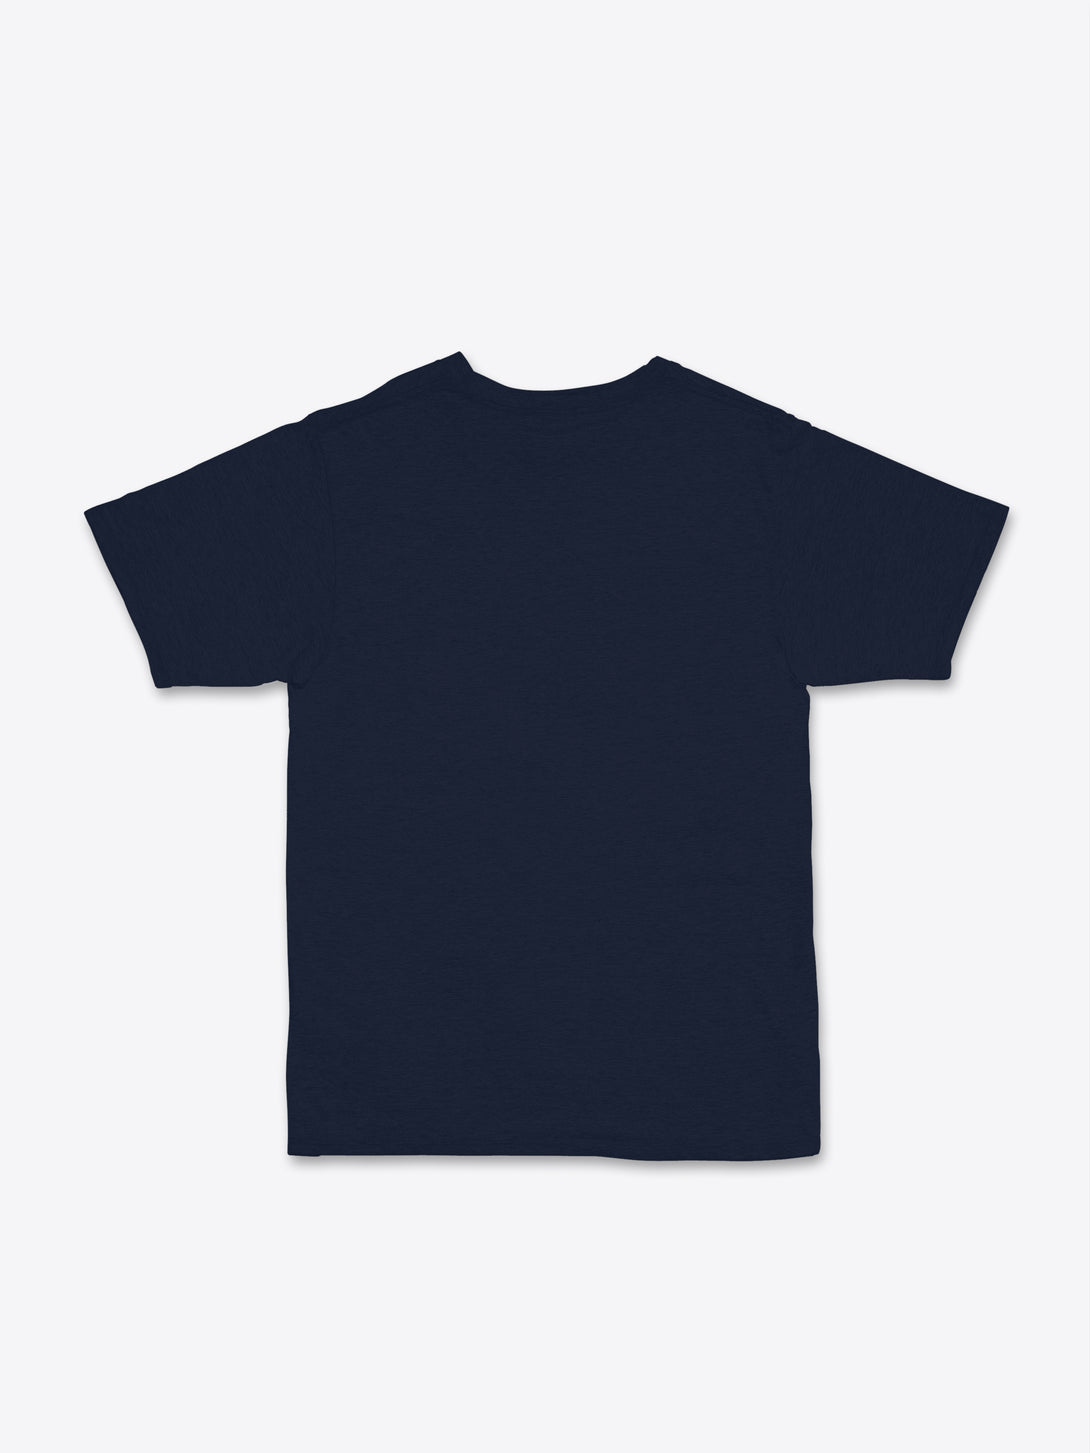 Jersey 'Borderline' S/S Tee - Navy